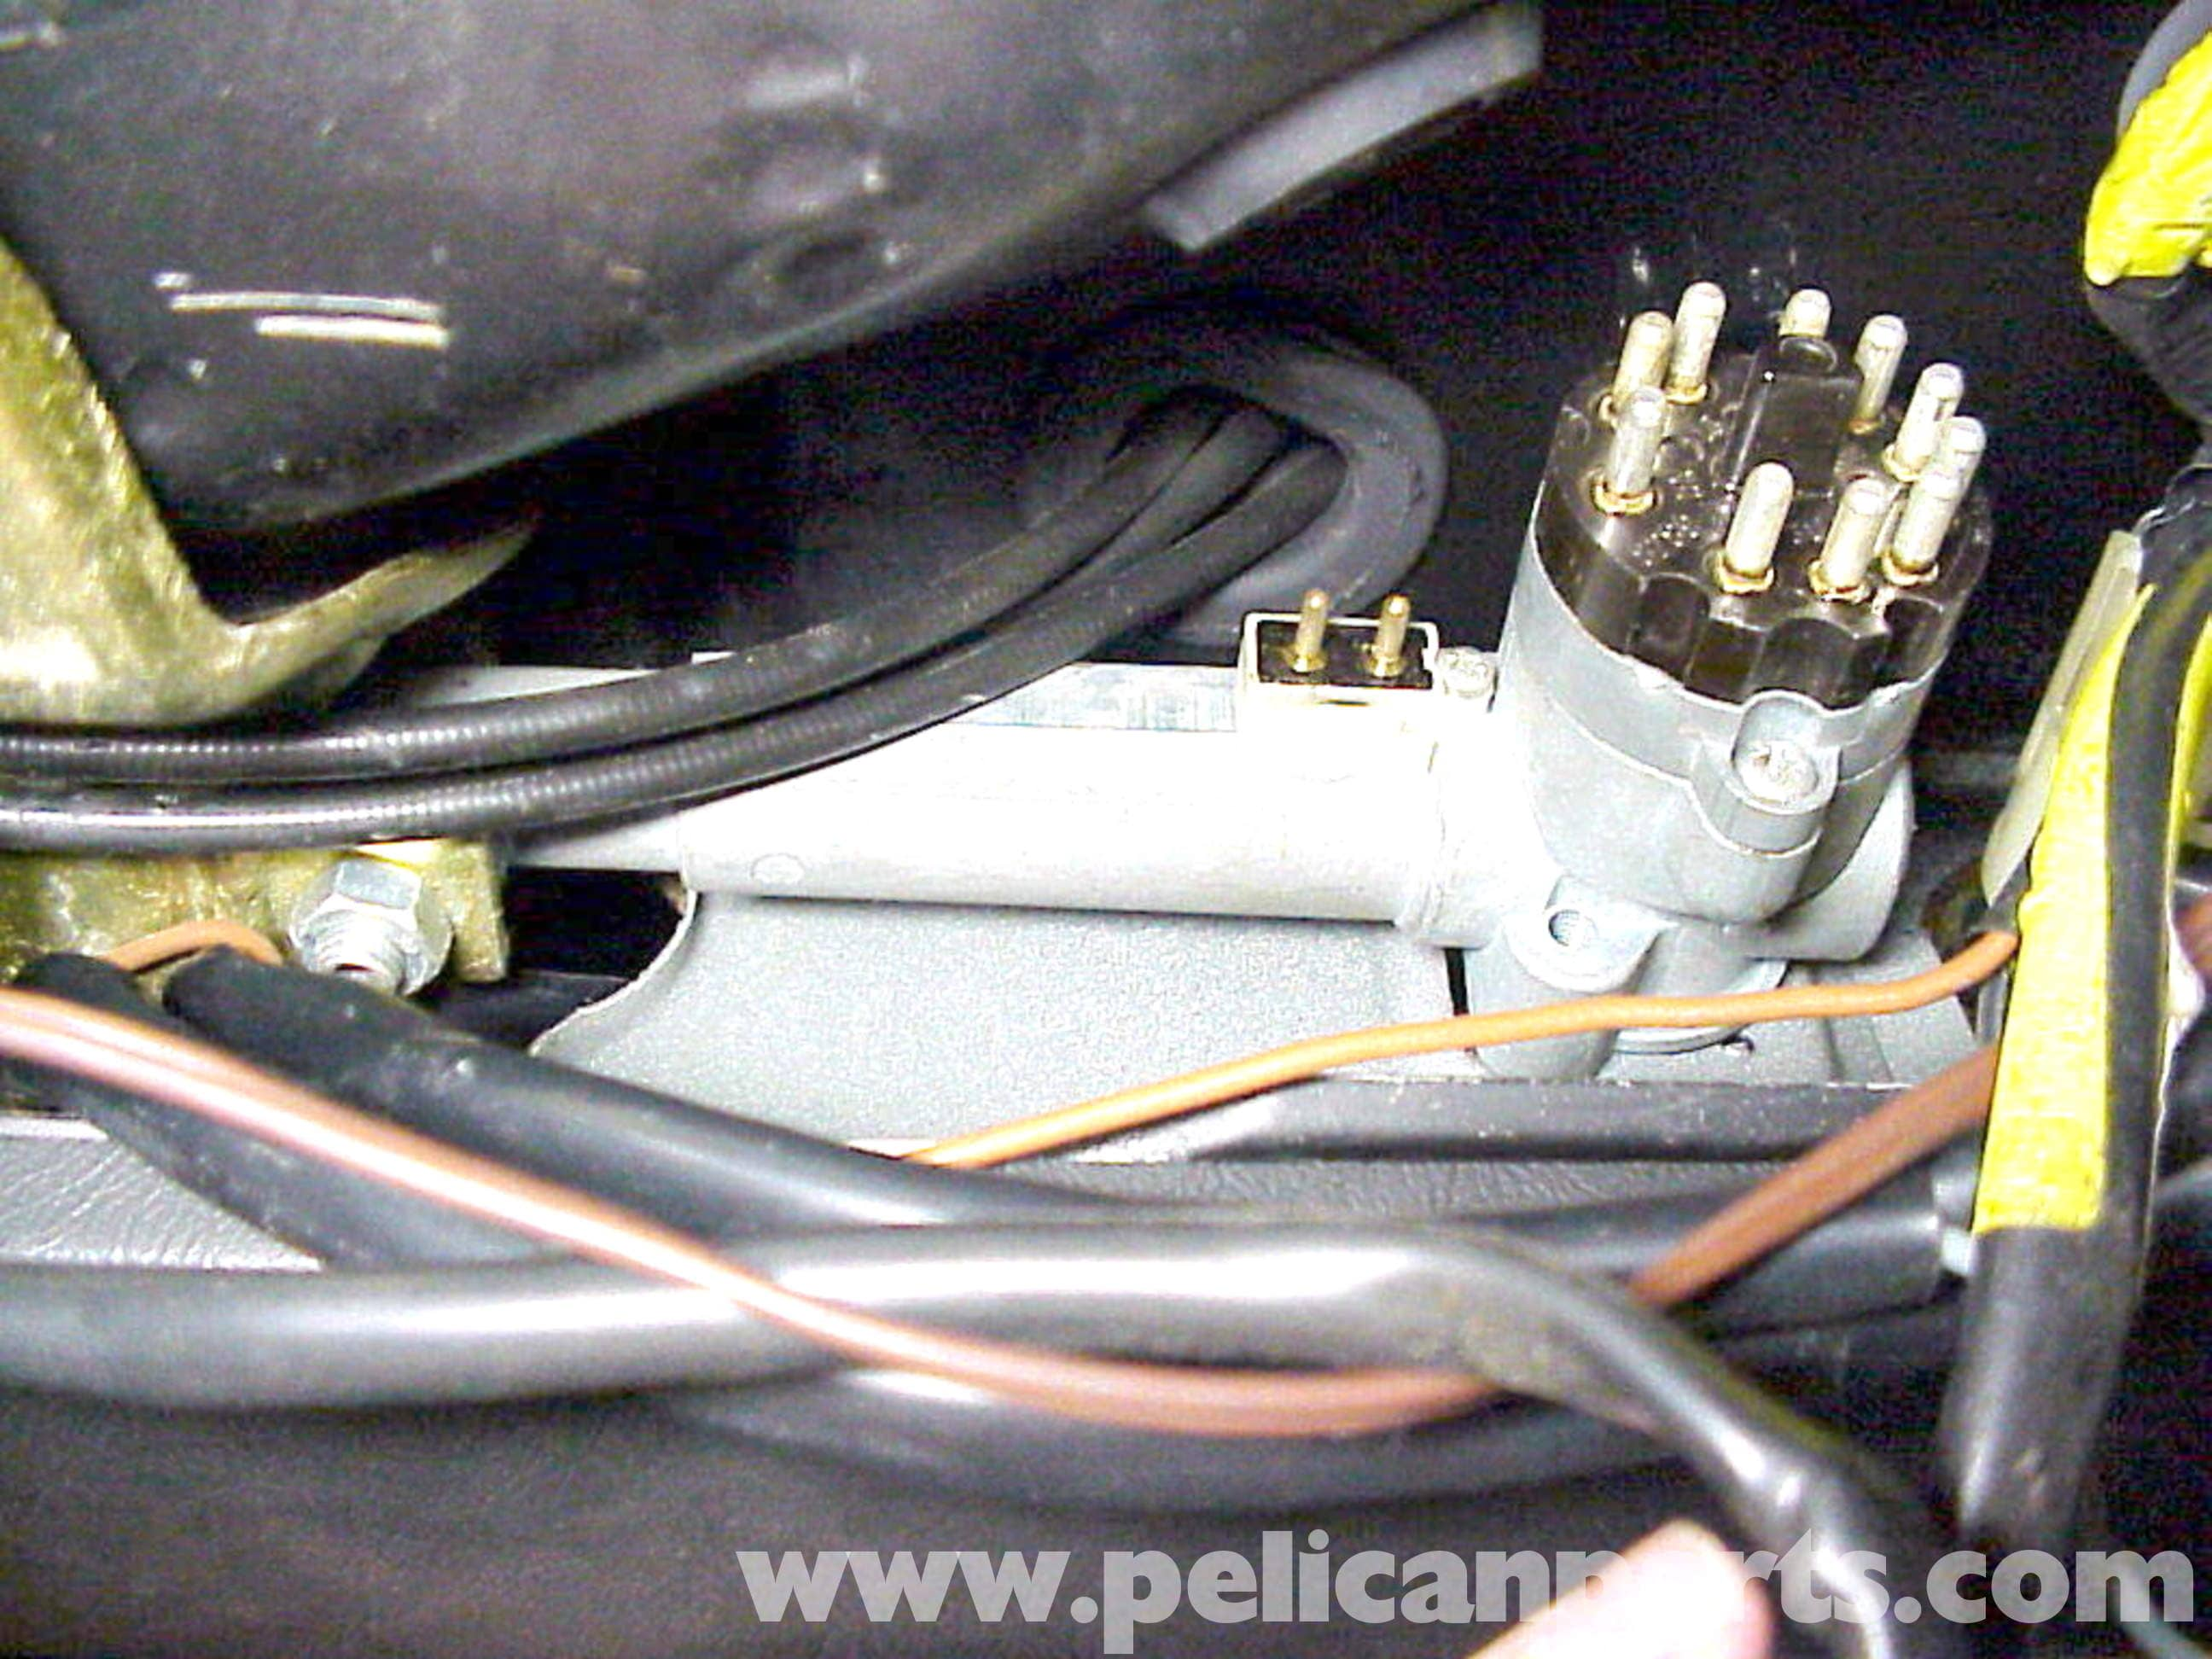 Pic2 porsche 911 ignition switch replacement 911 (1965 89) 930 porsche 911 wiring harness replacement at bakdesigns.co